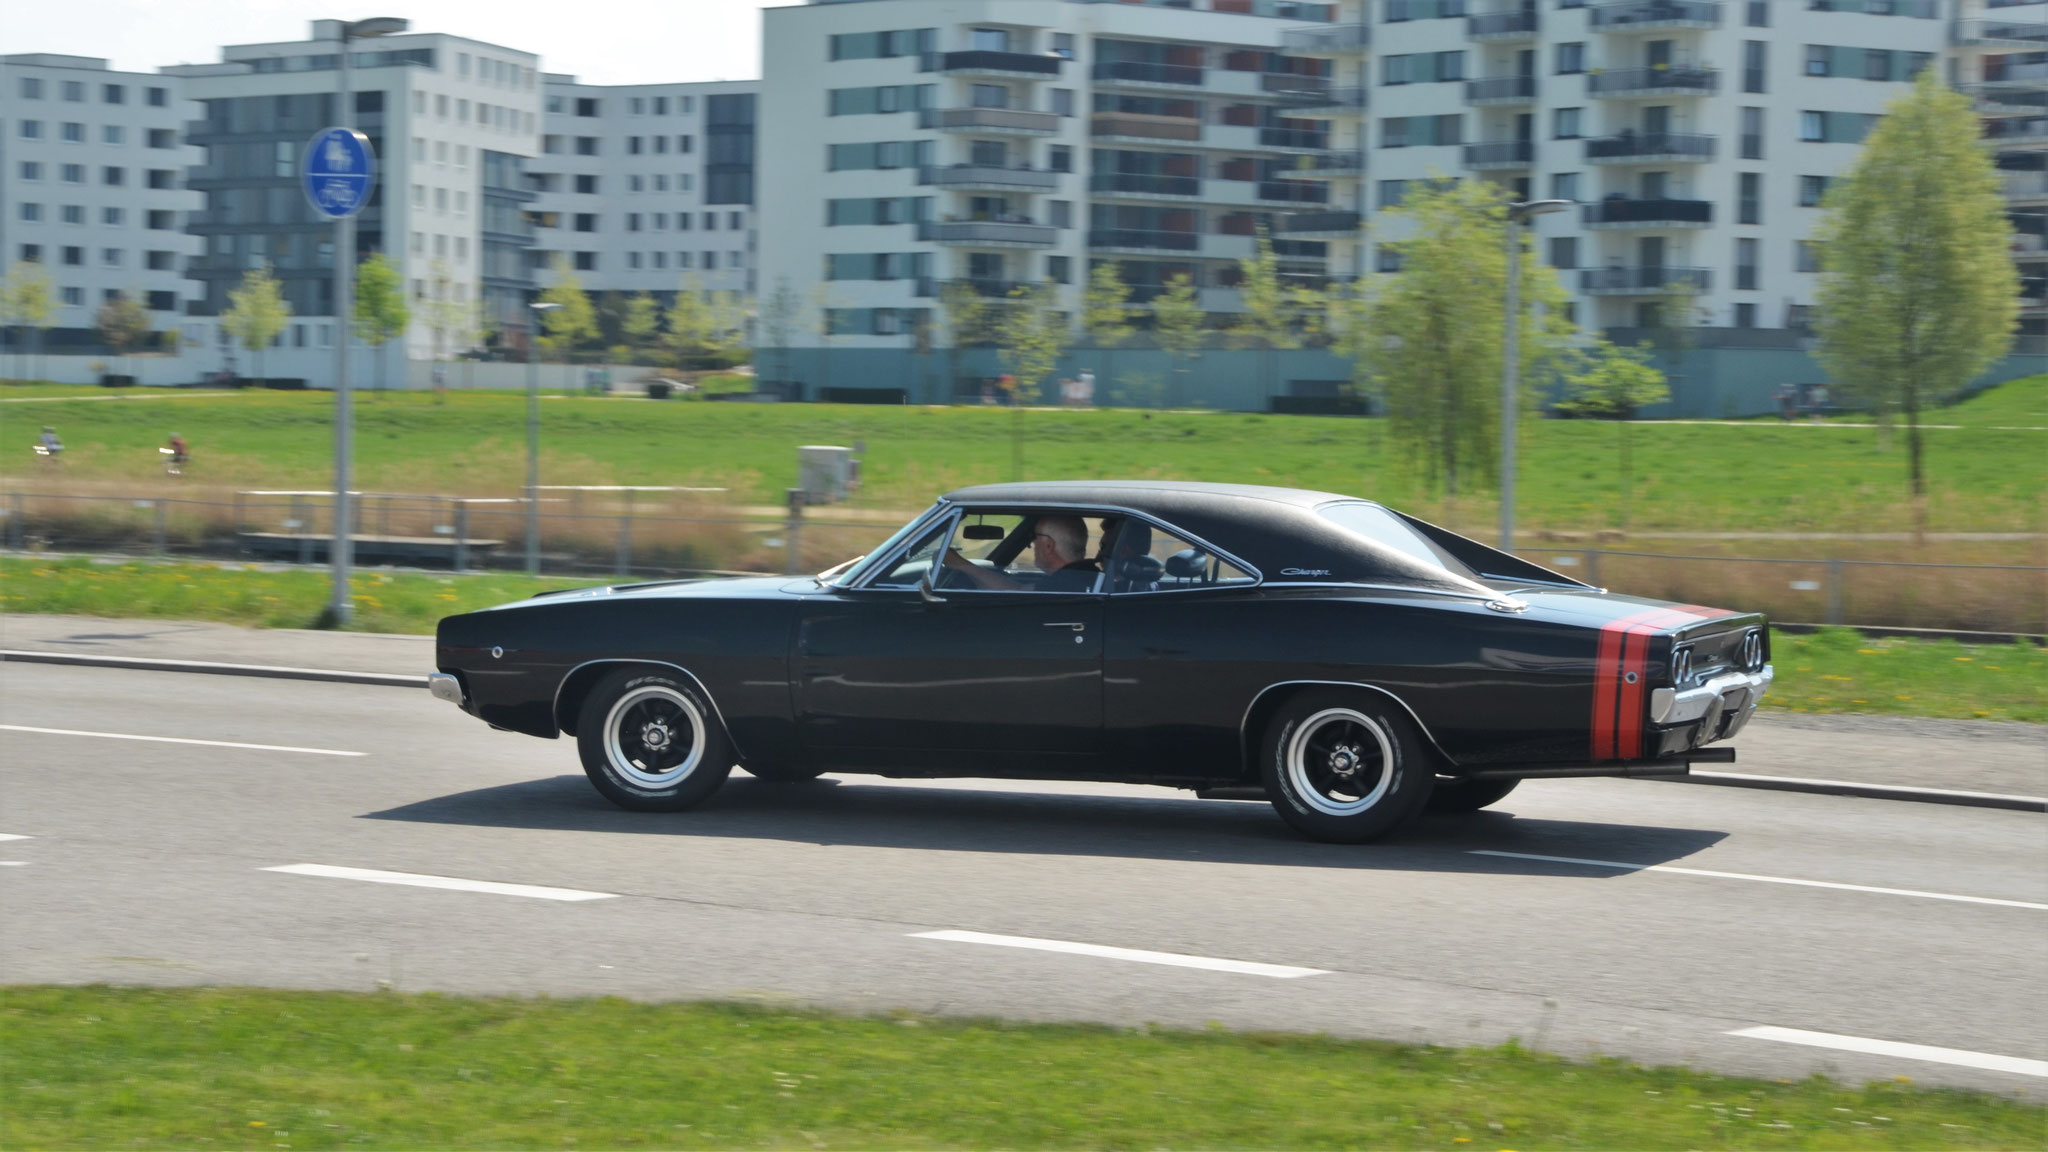 Dodge Charger - BB-DC-68H